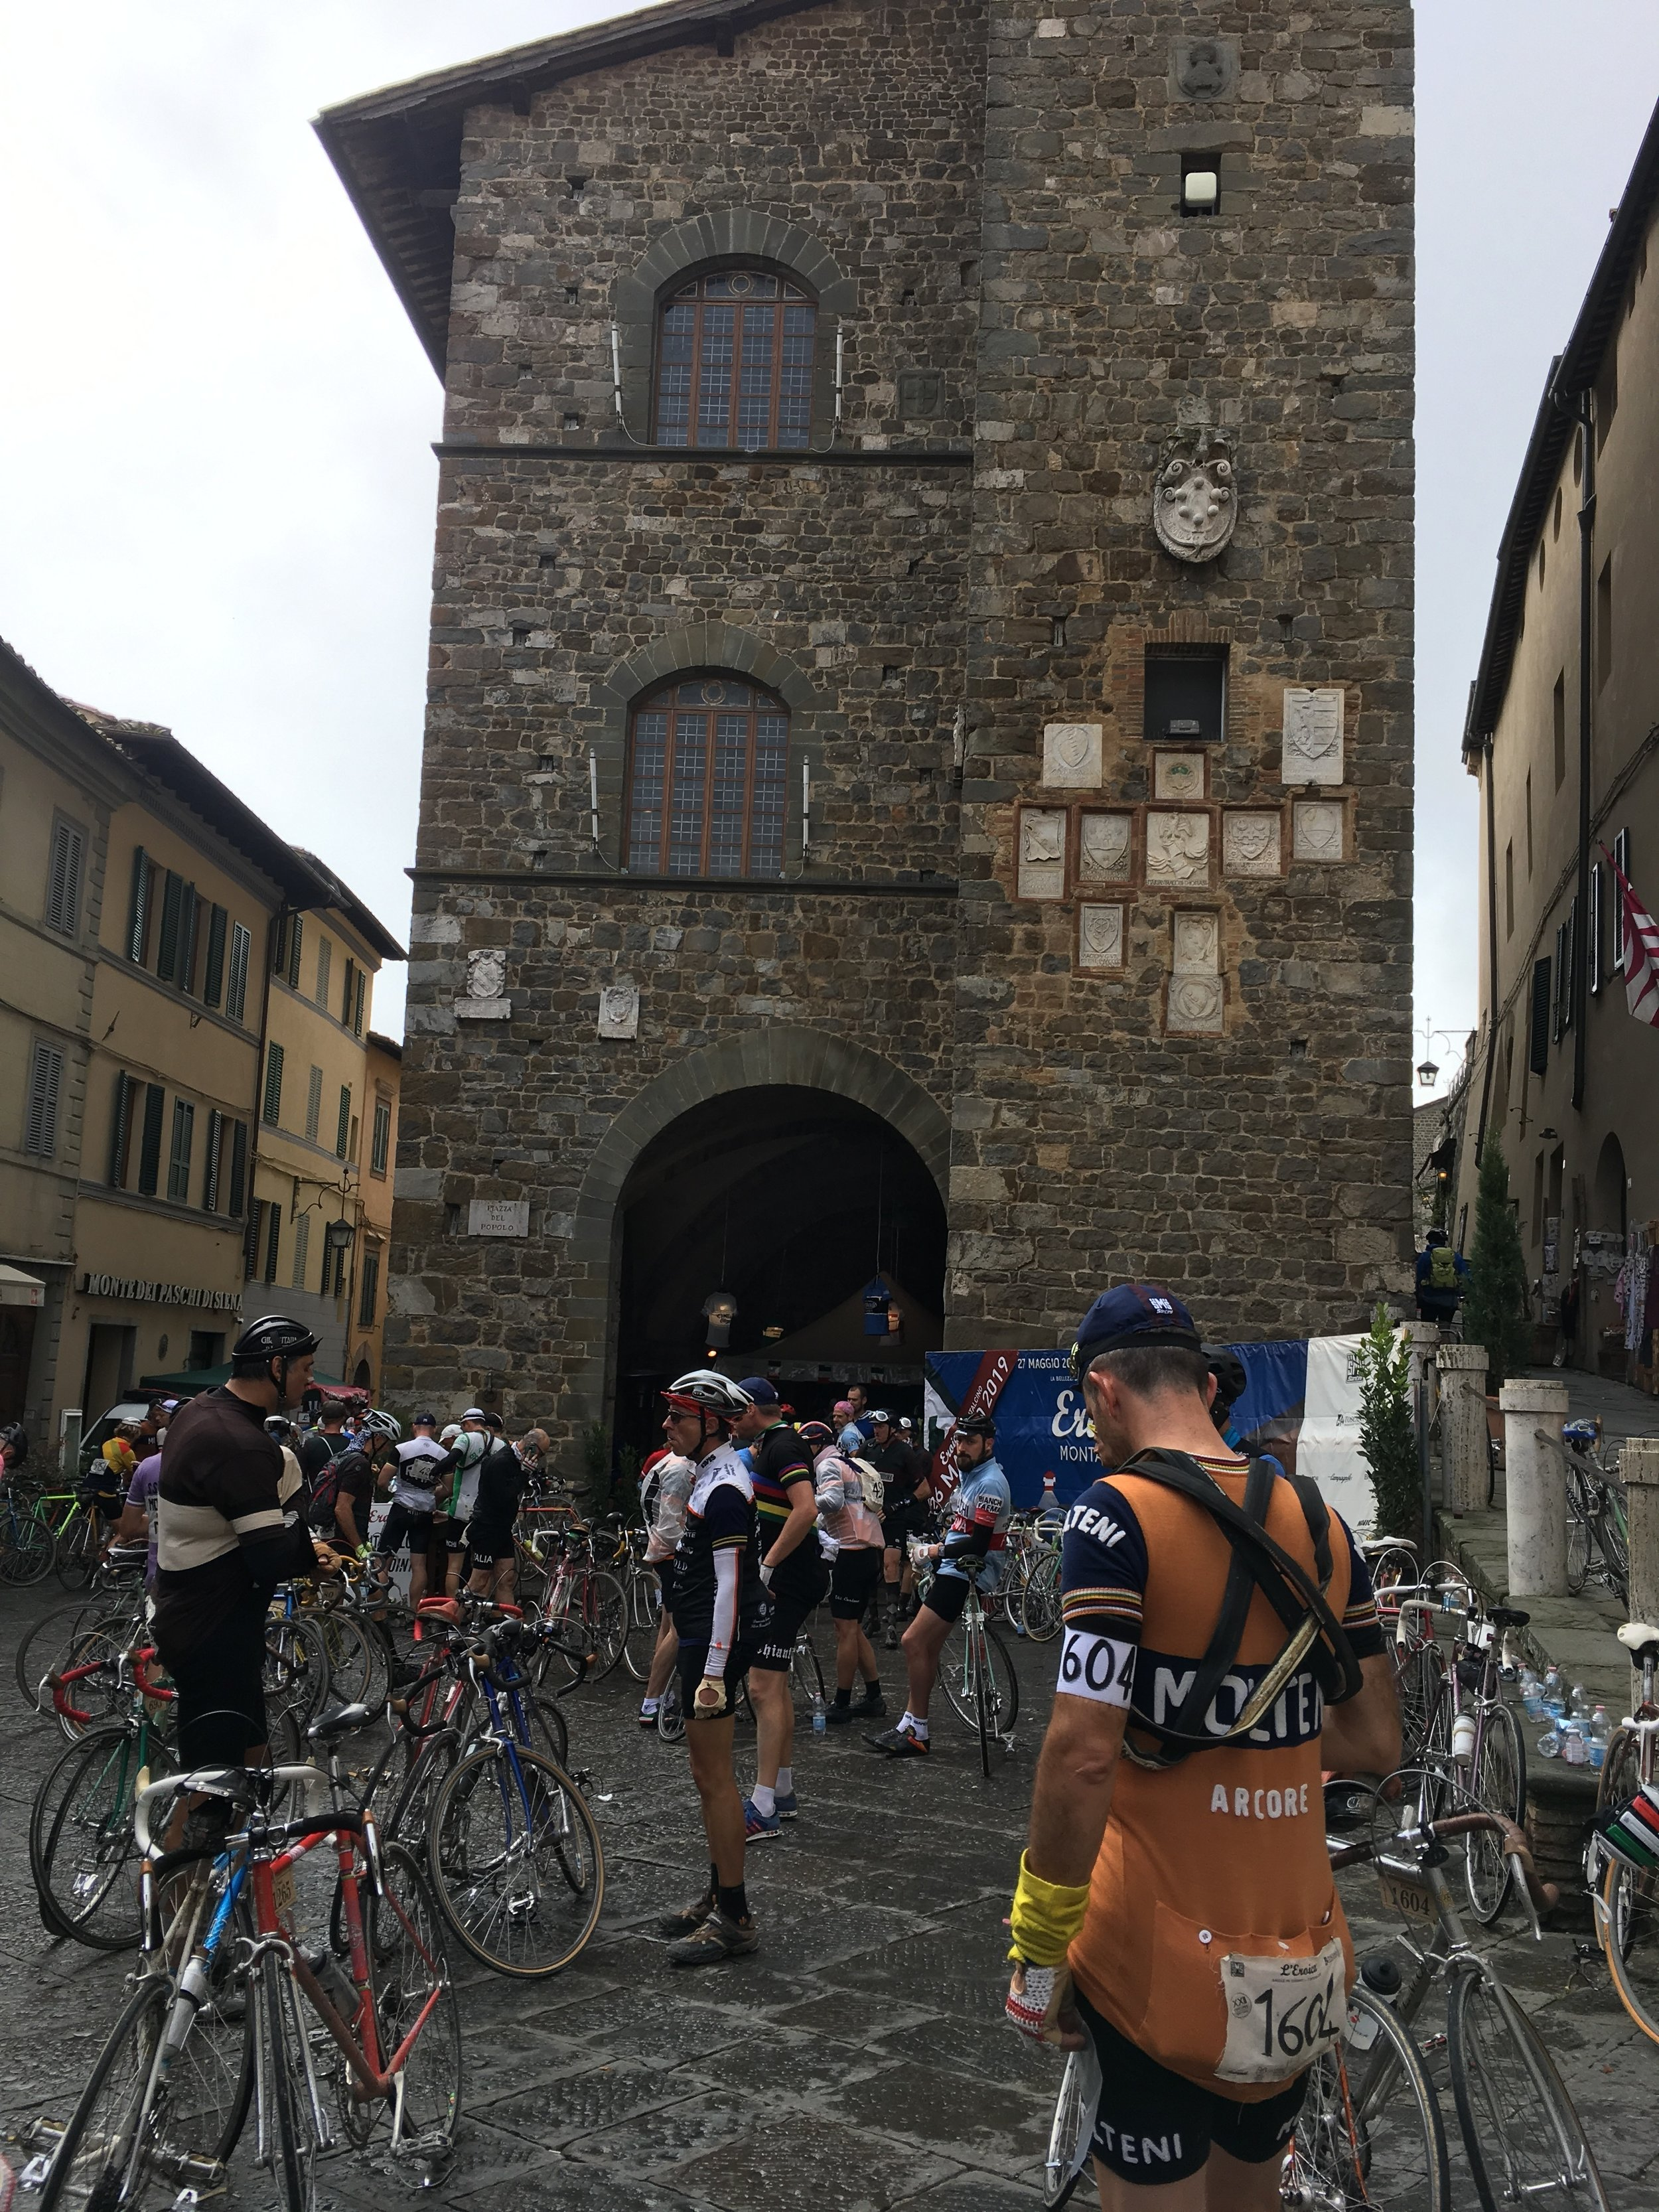 Montalcino was a tough climb and great descent